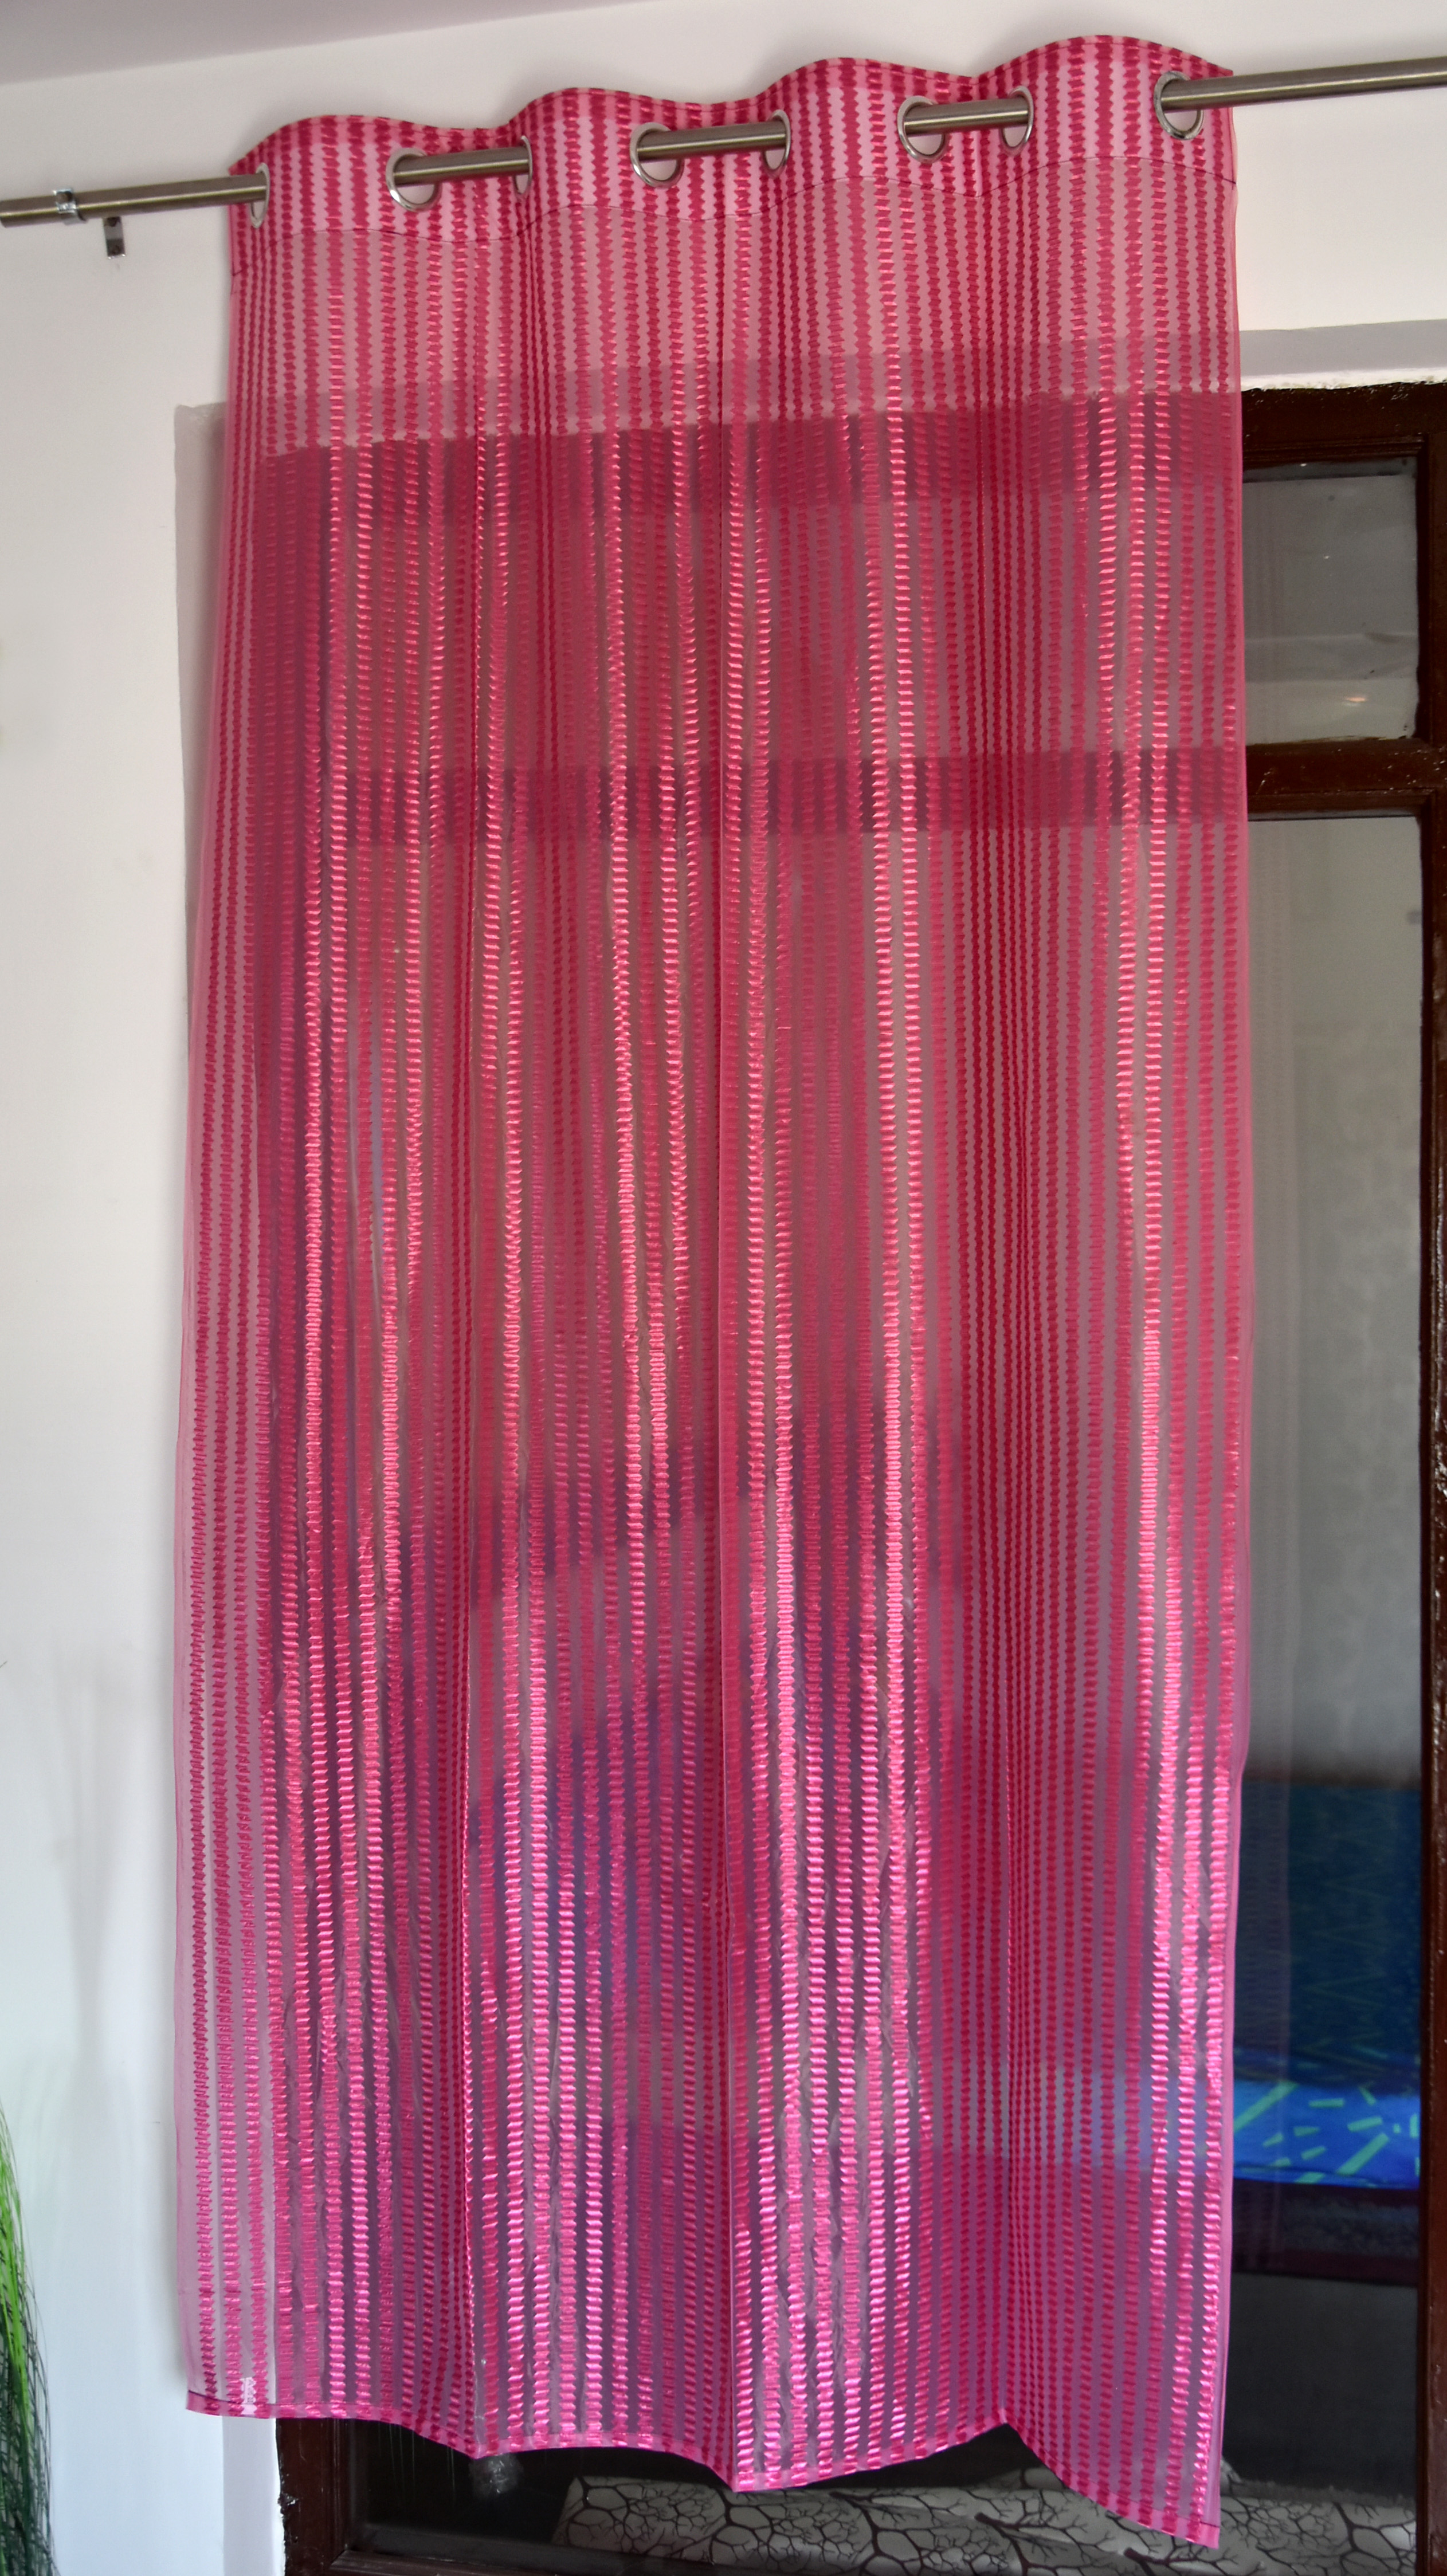 Homefab India 2 Piece Polyester  Sheer Curtain  (Setof2HF704TissueFlipFlopPink)